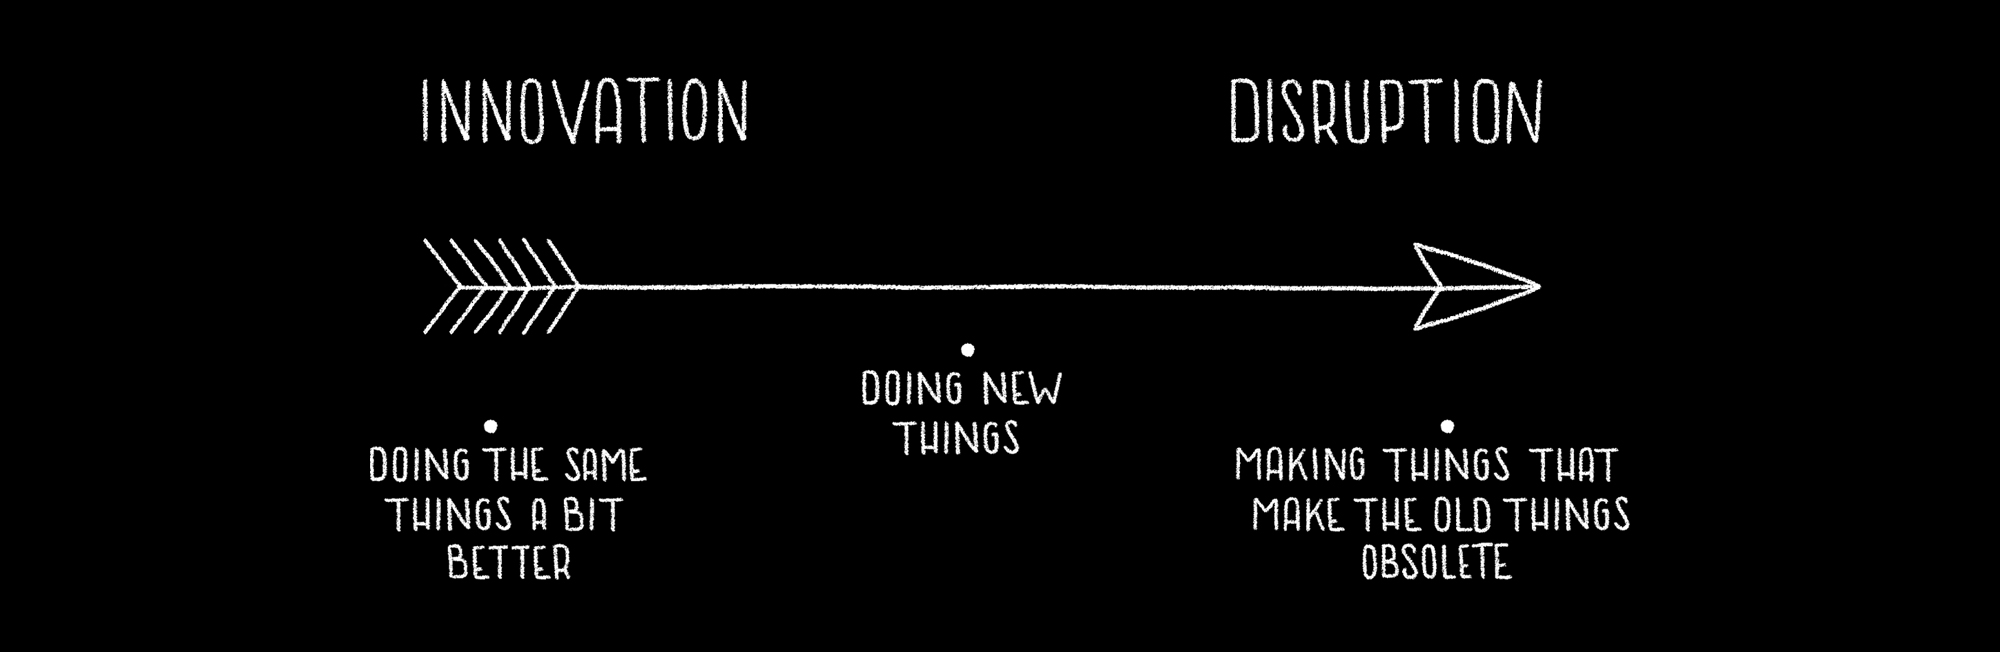 going beyond innovation and design thinking with the Disruptive Design Method